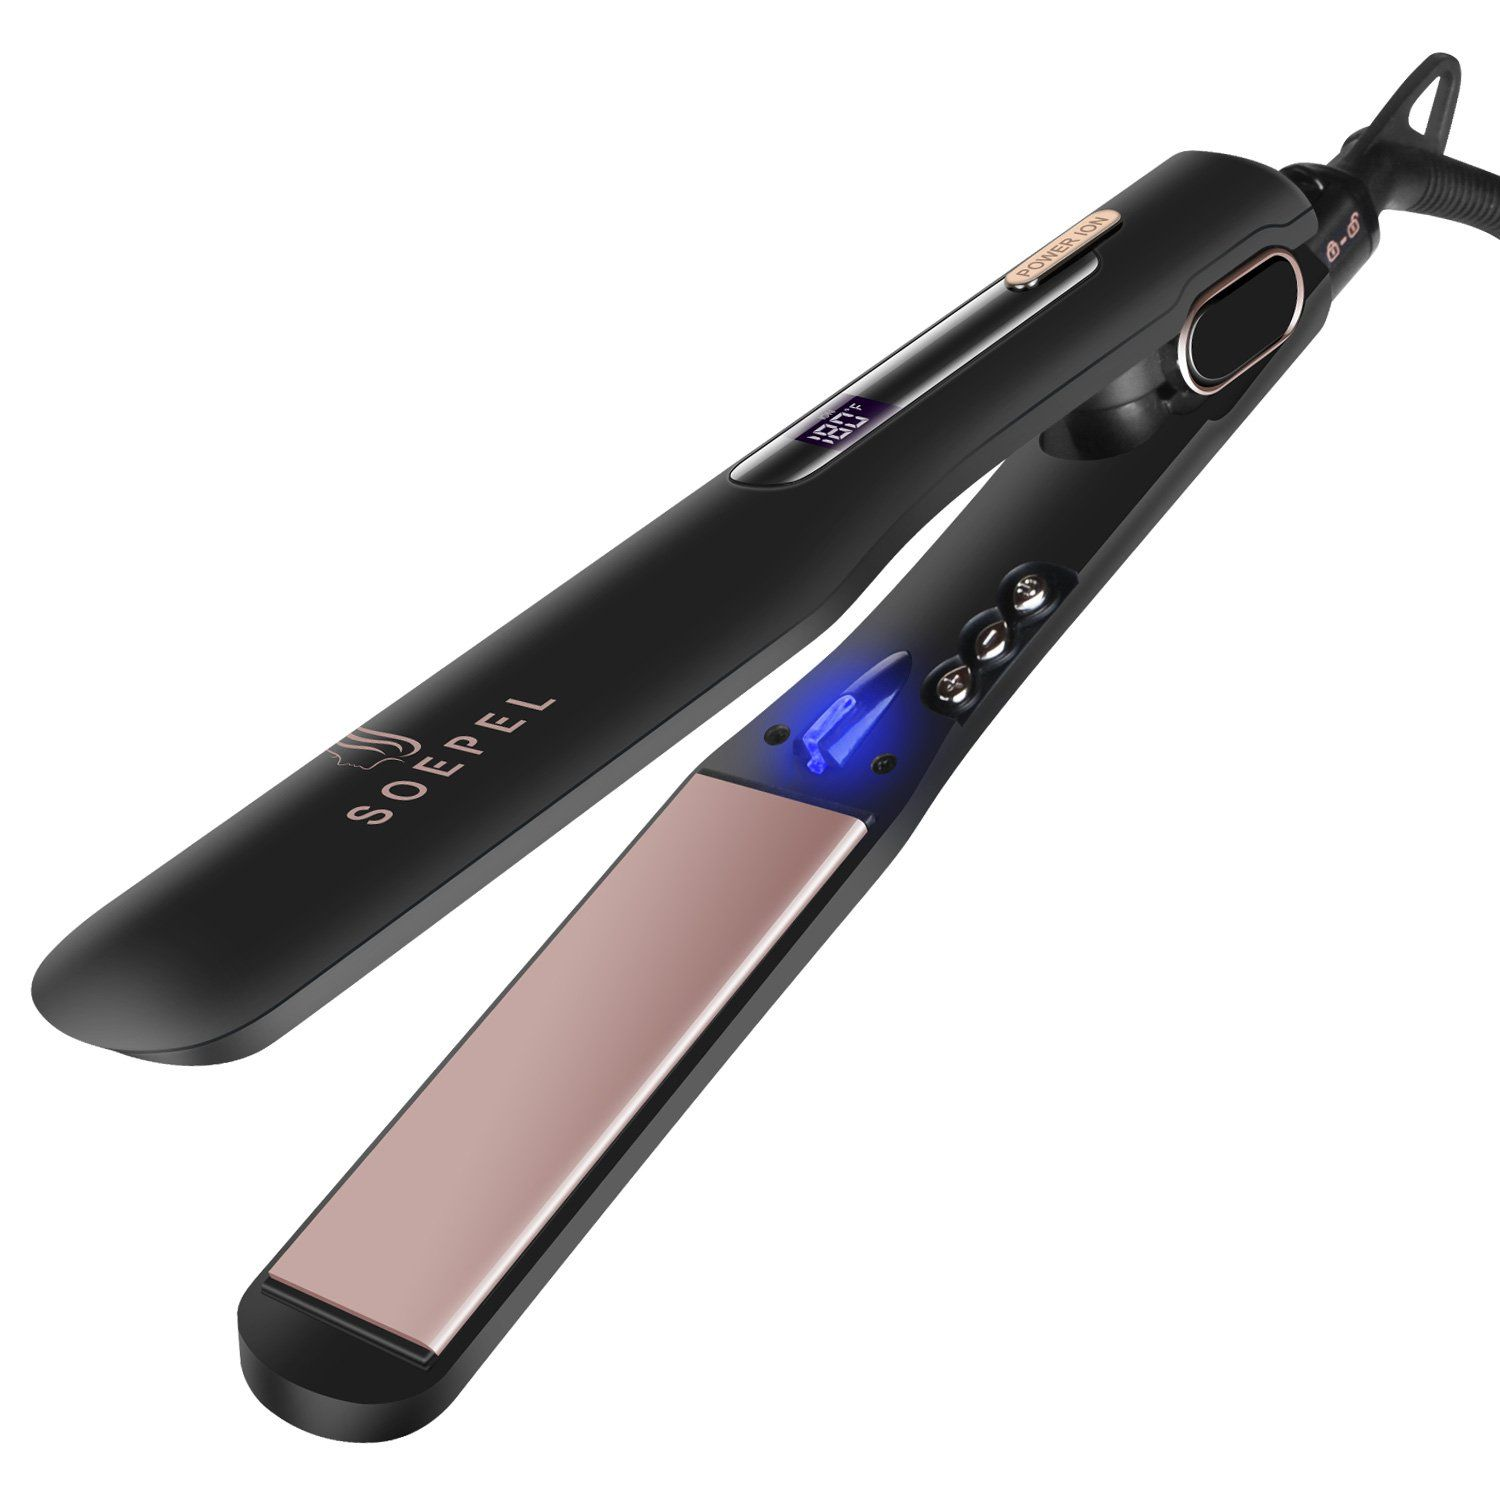 Hair Straightener and Curler 2 in 1 Set. Hot flat iron